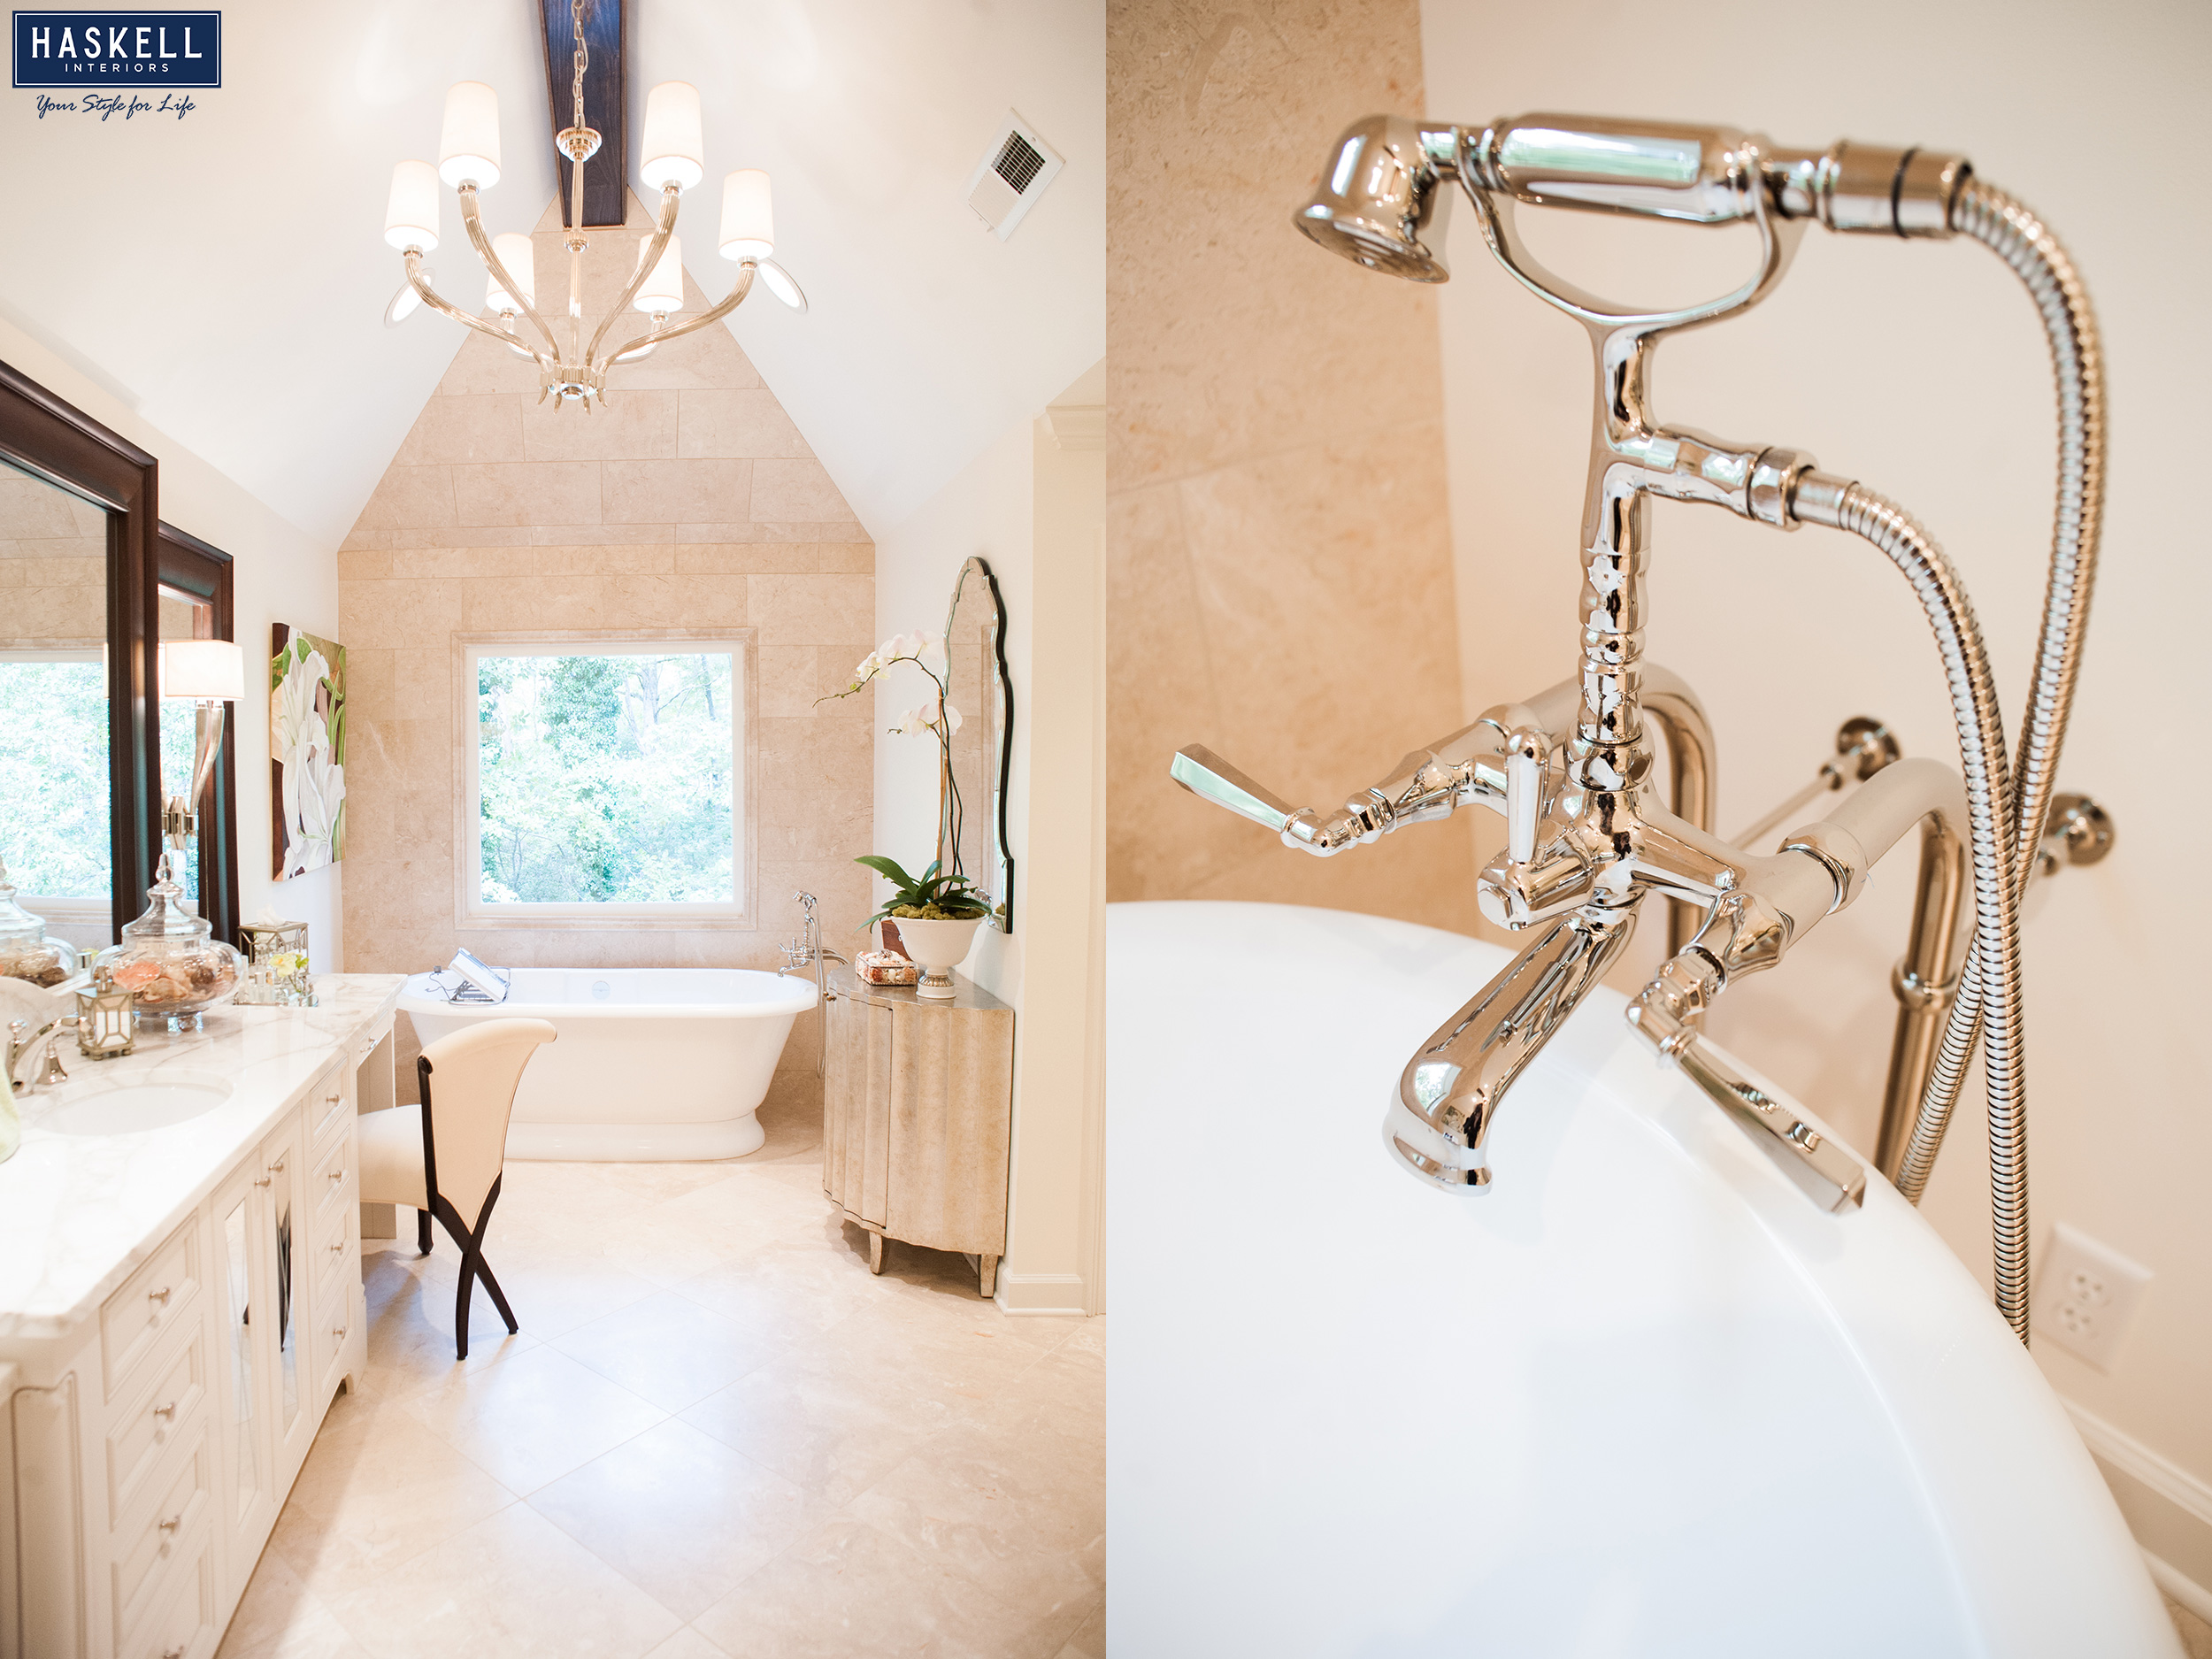 freestanding tub with faucet deck. Bathtub Faucet Choosing the Right for your Master Bath  Haskell s Blog